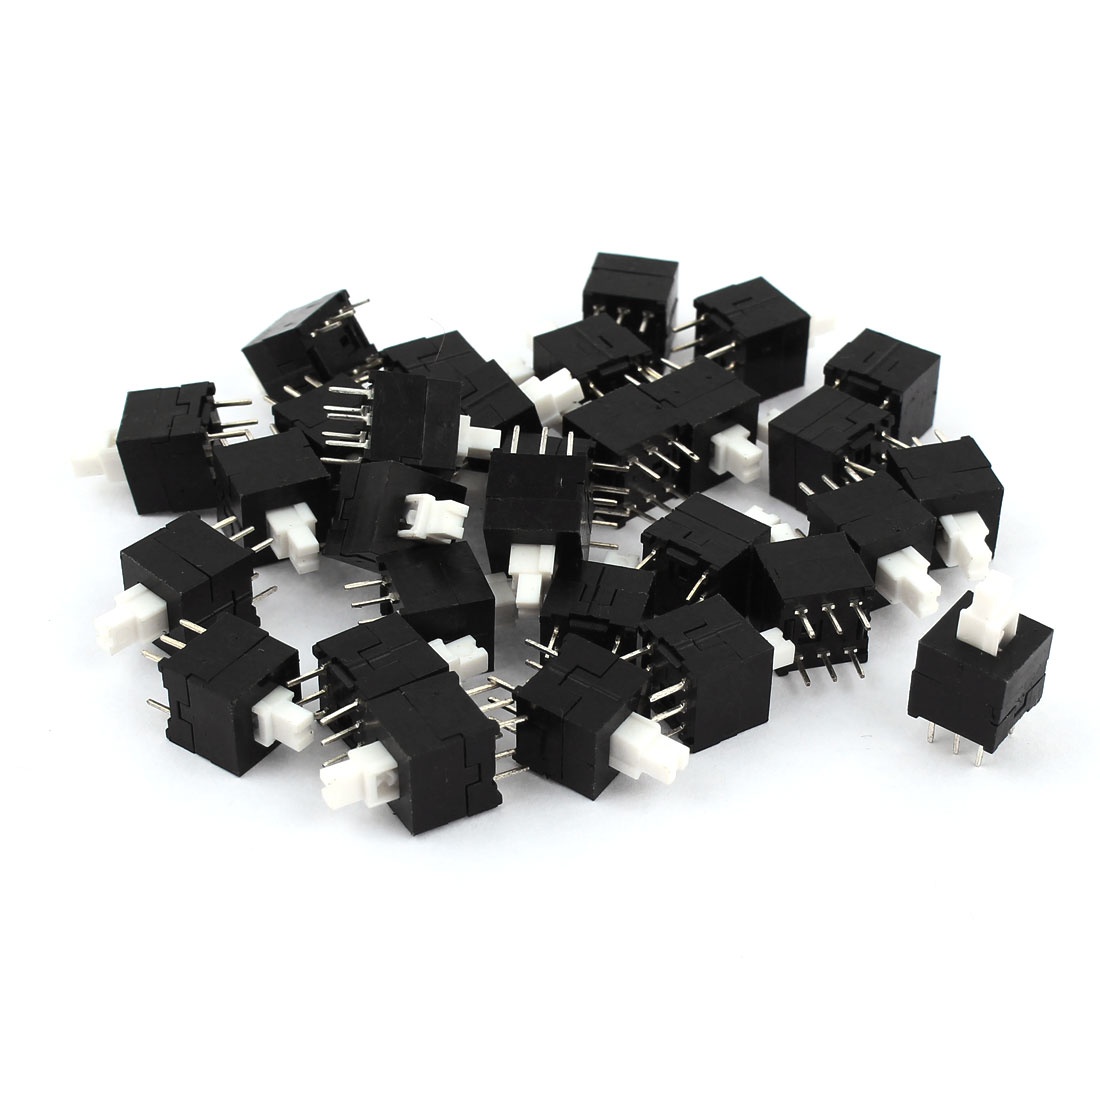 30 Pieces 16mmx8.6mmx8.5mm 6 Pins Latching Push Button Tact Tactile Micro Switch